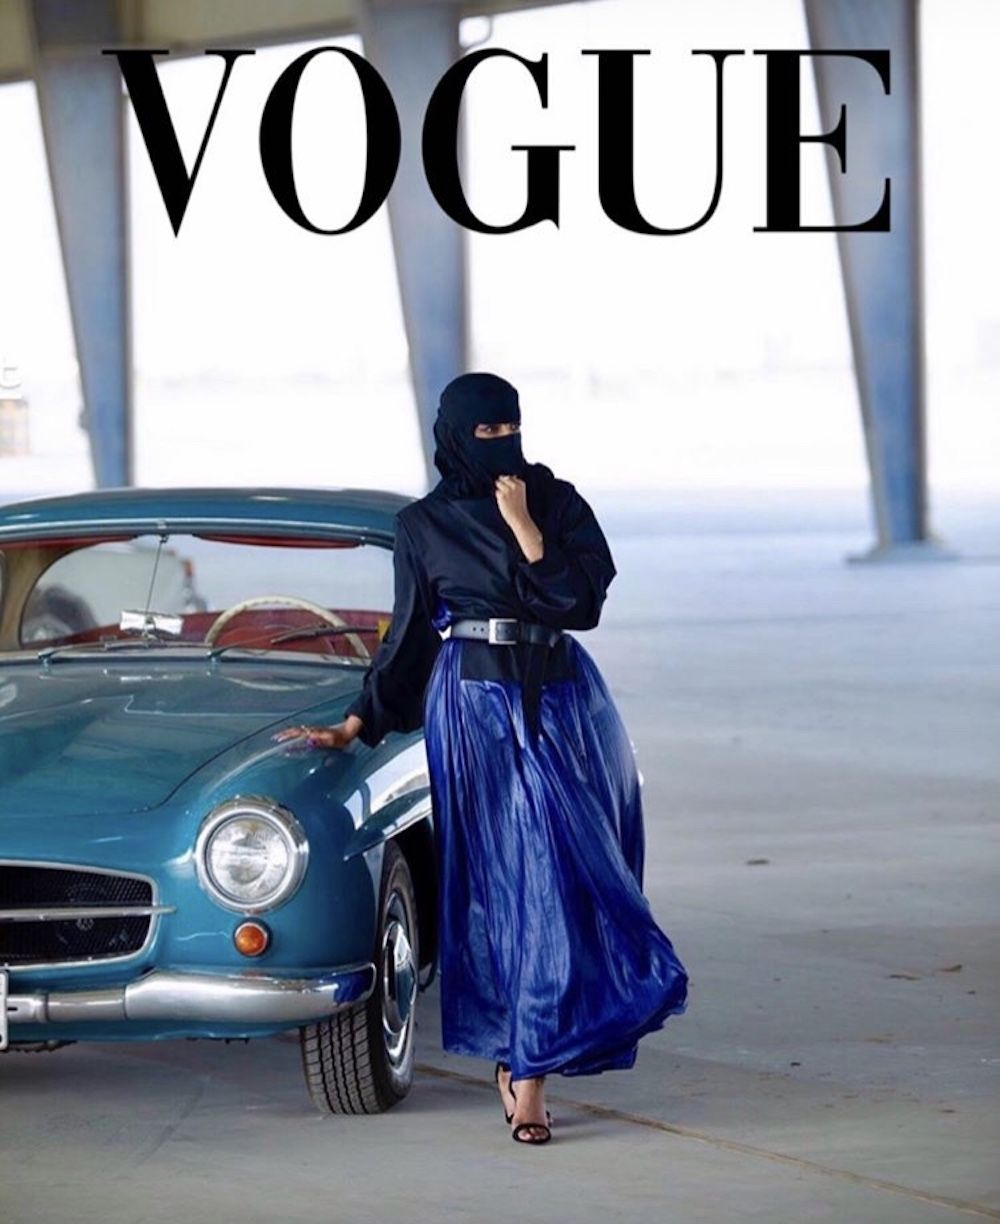 Some of Our Favorite Covers from The #VogueChallenge